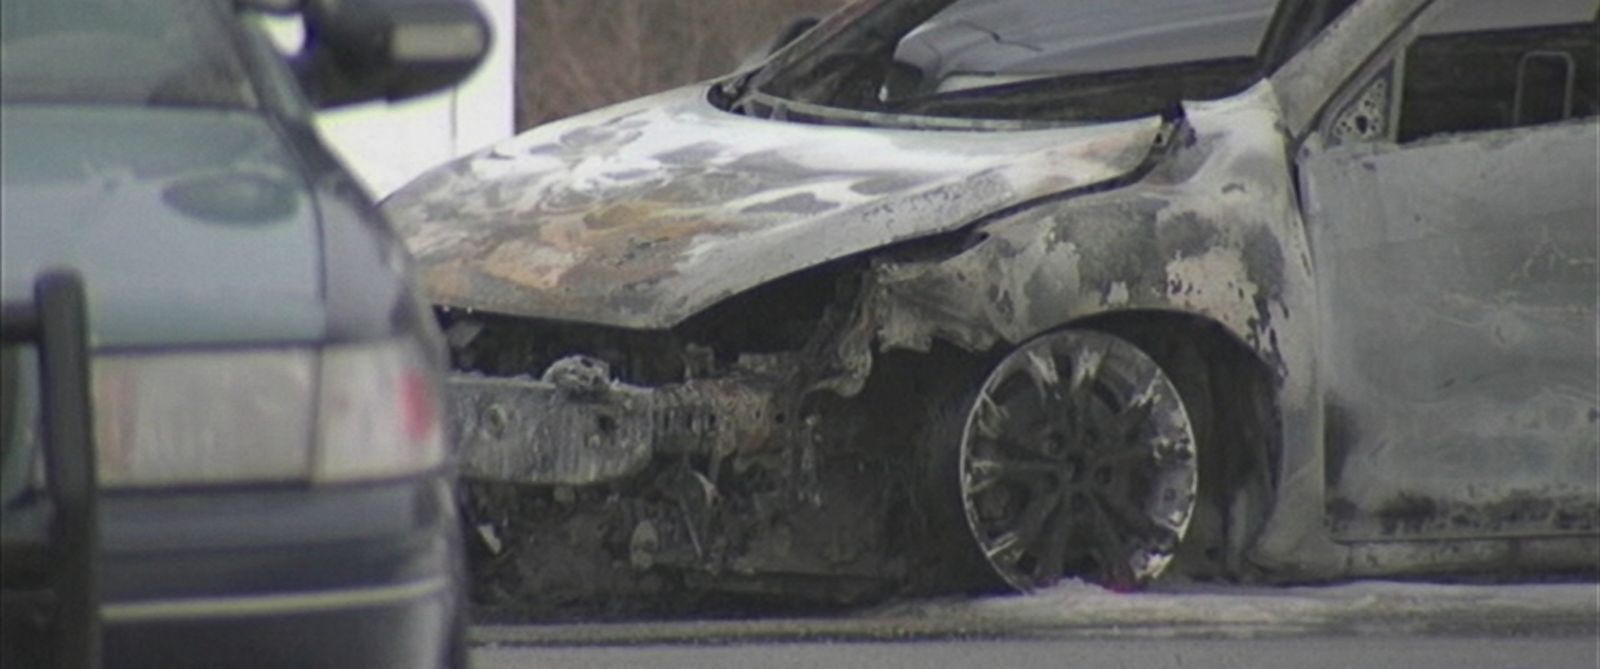 PHOTO: Police were called to the scene after hearing reports of a vehicle that had been set on fire.